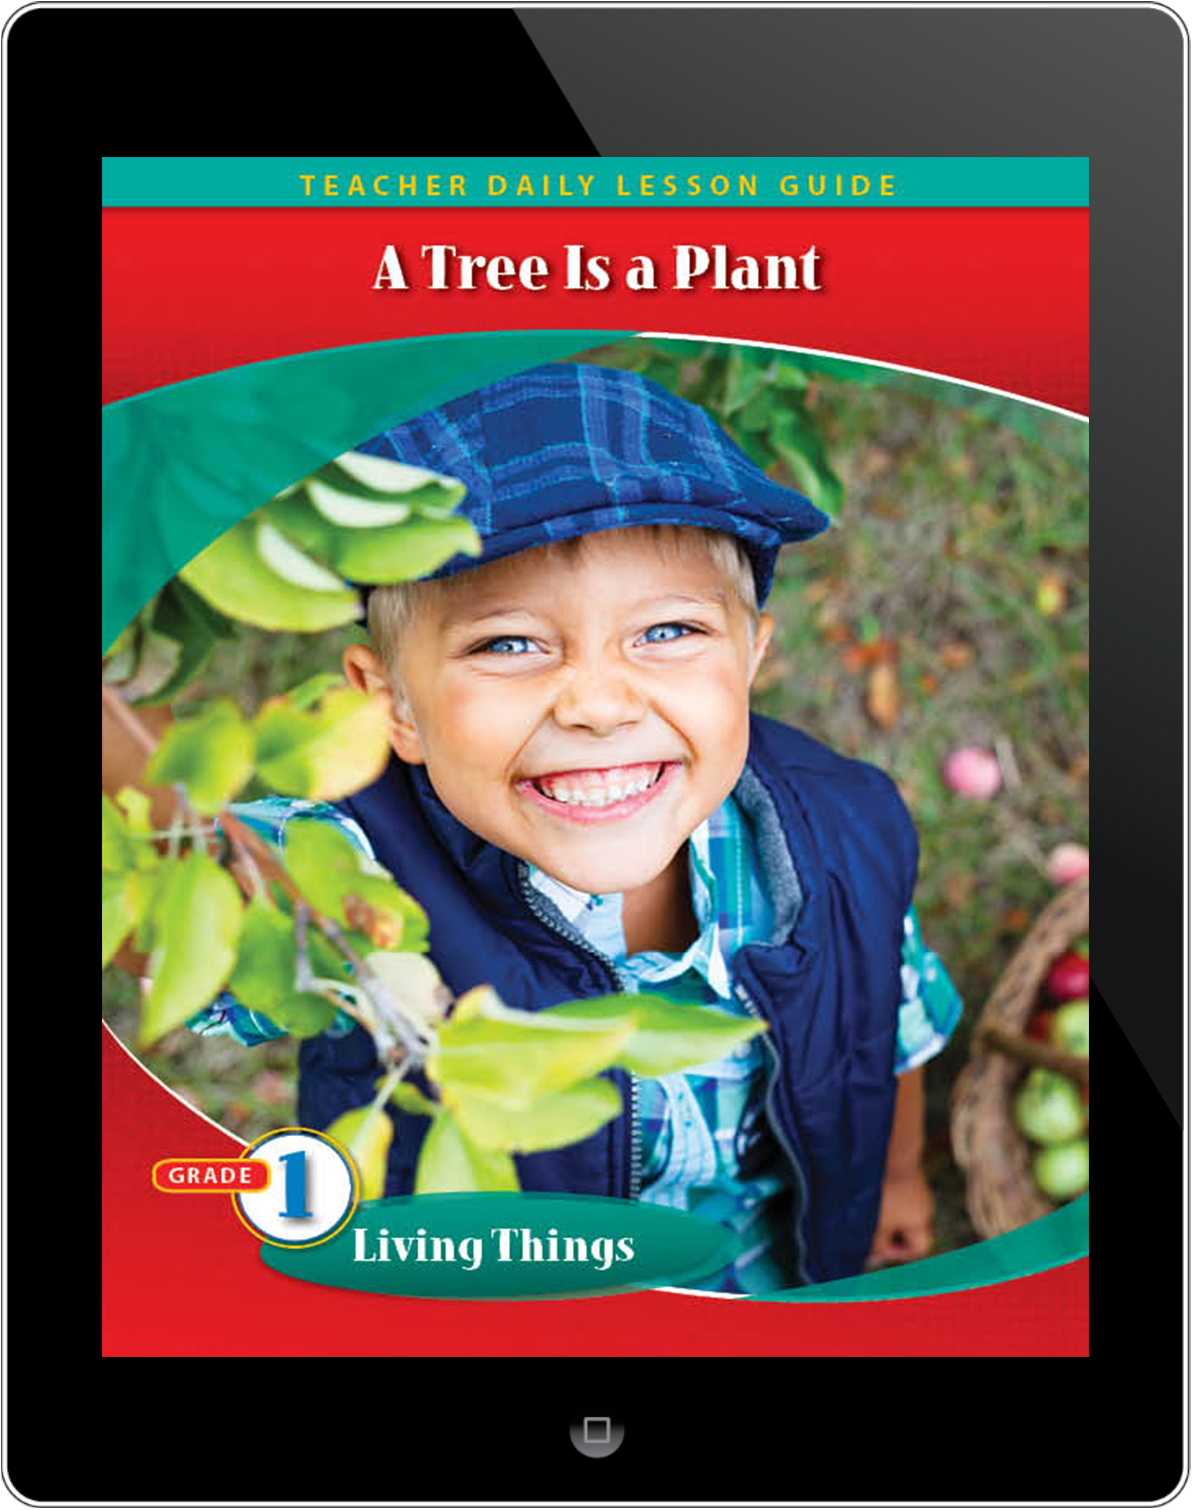 Pathways2.0 Grade 1 Living Things Unit: A Tree Is a Plant Daily Lesson Guide 5 Year License